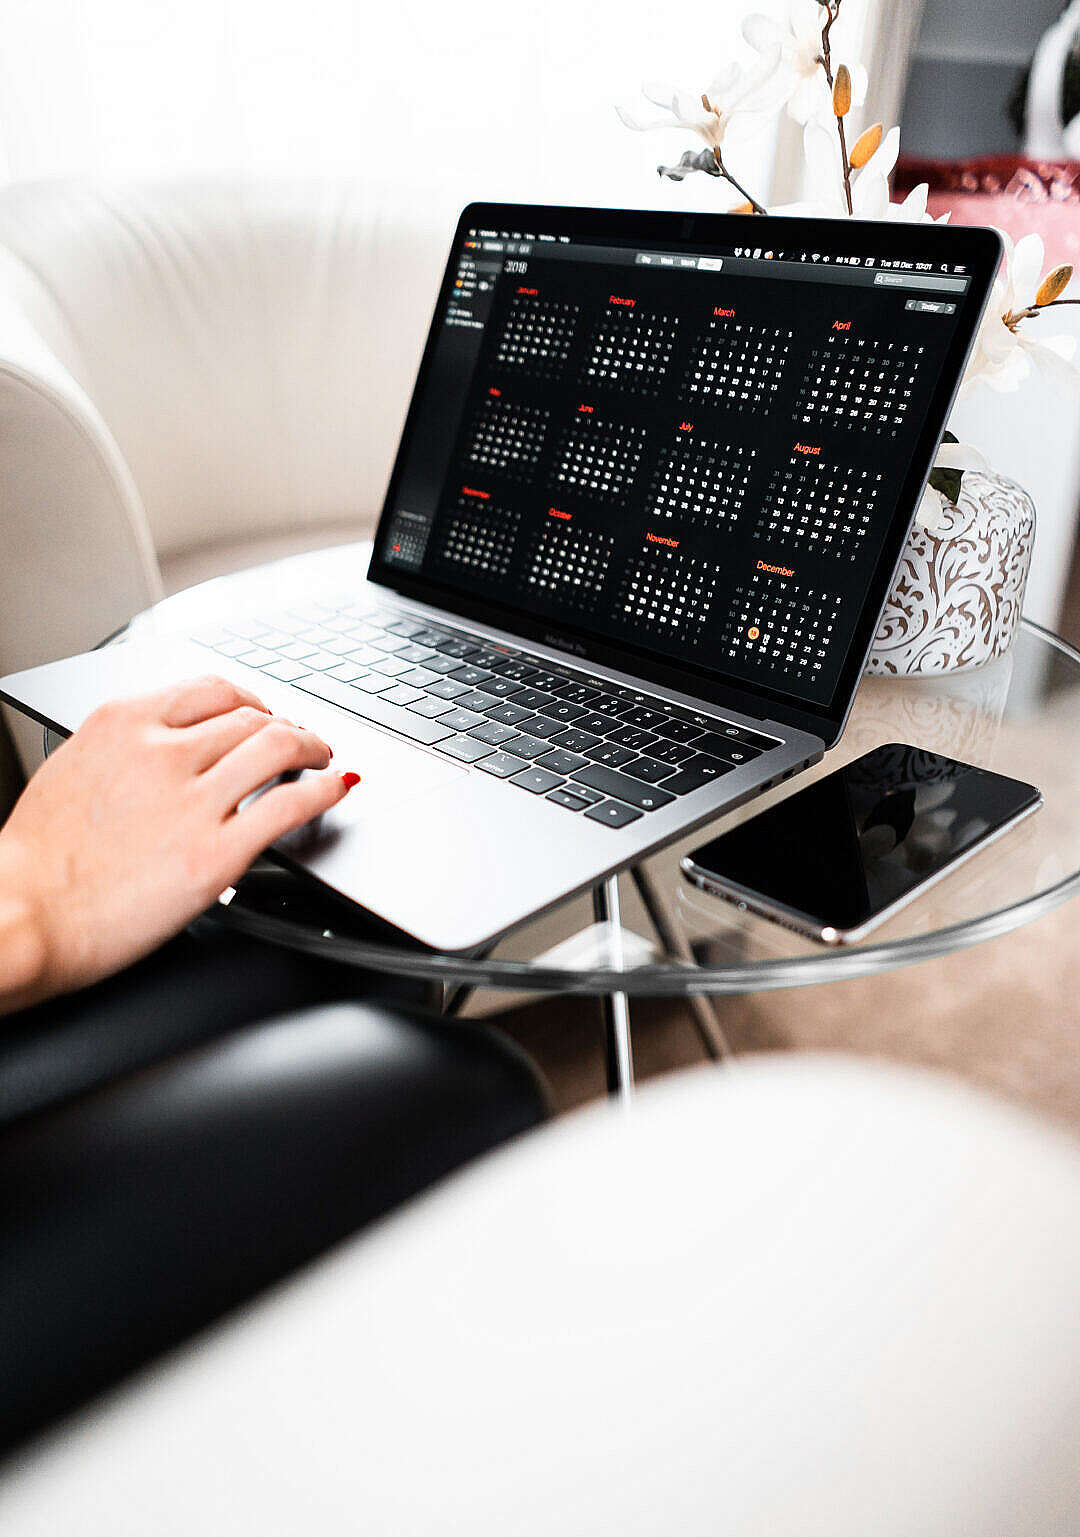 Download Time Management on Modern Laptop FREE Stock Photo